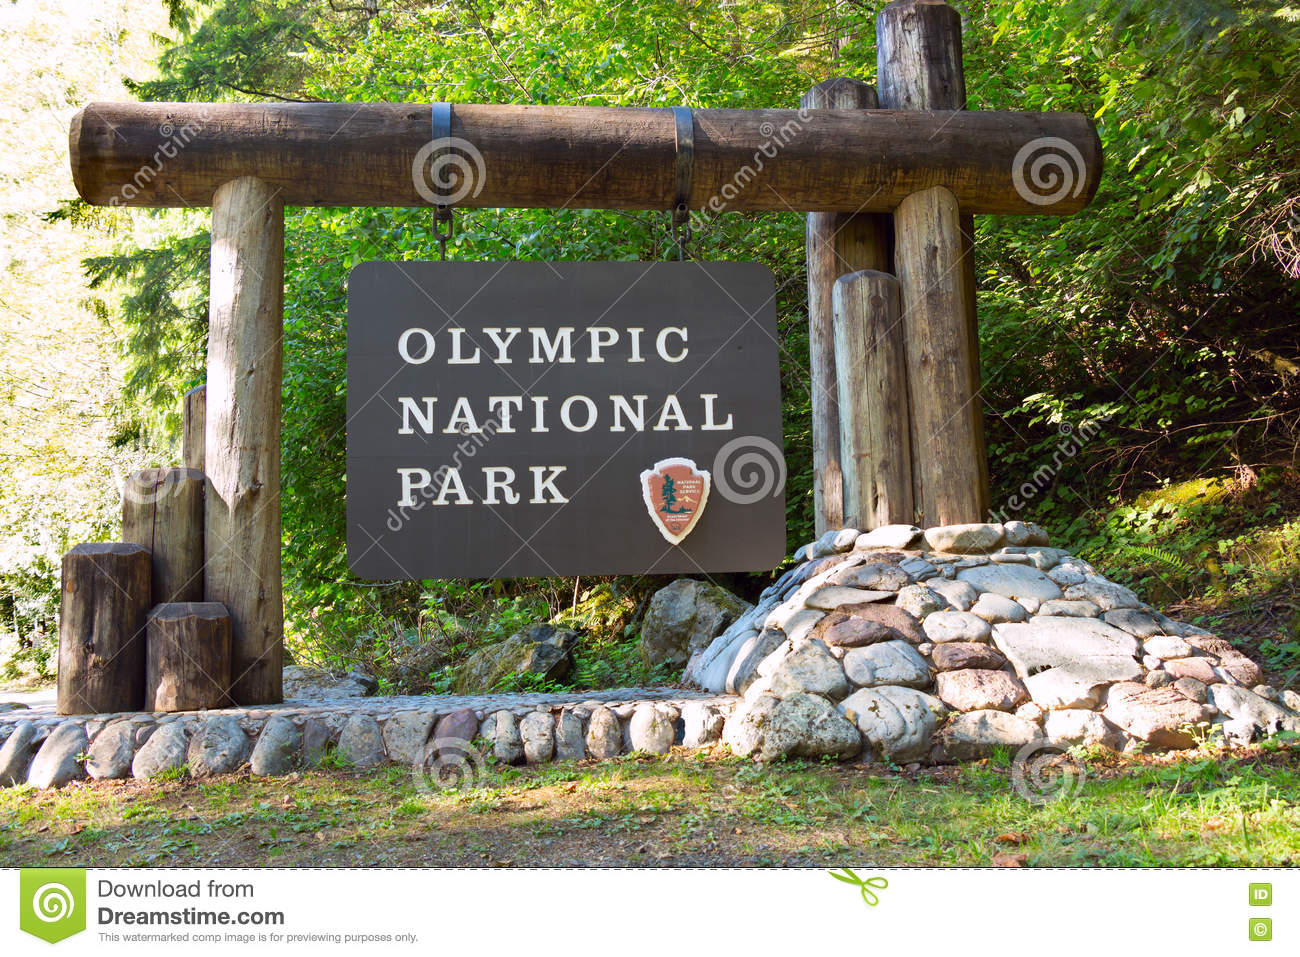 Olympic National Park Sign Stock Photo  Image 77413939. Manuscript Signs. Acrylic Signs. Muscle Weakness Signs. Number 33 Signs Of Stroke. Foot Infection Signs Of Stroke. Pms Signs Of Stroke. Levels Signs. Earthquake Signs